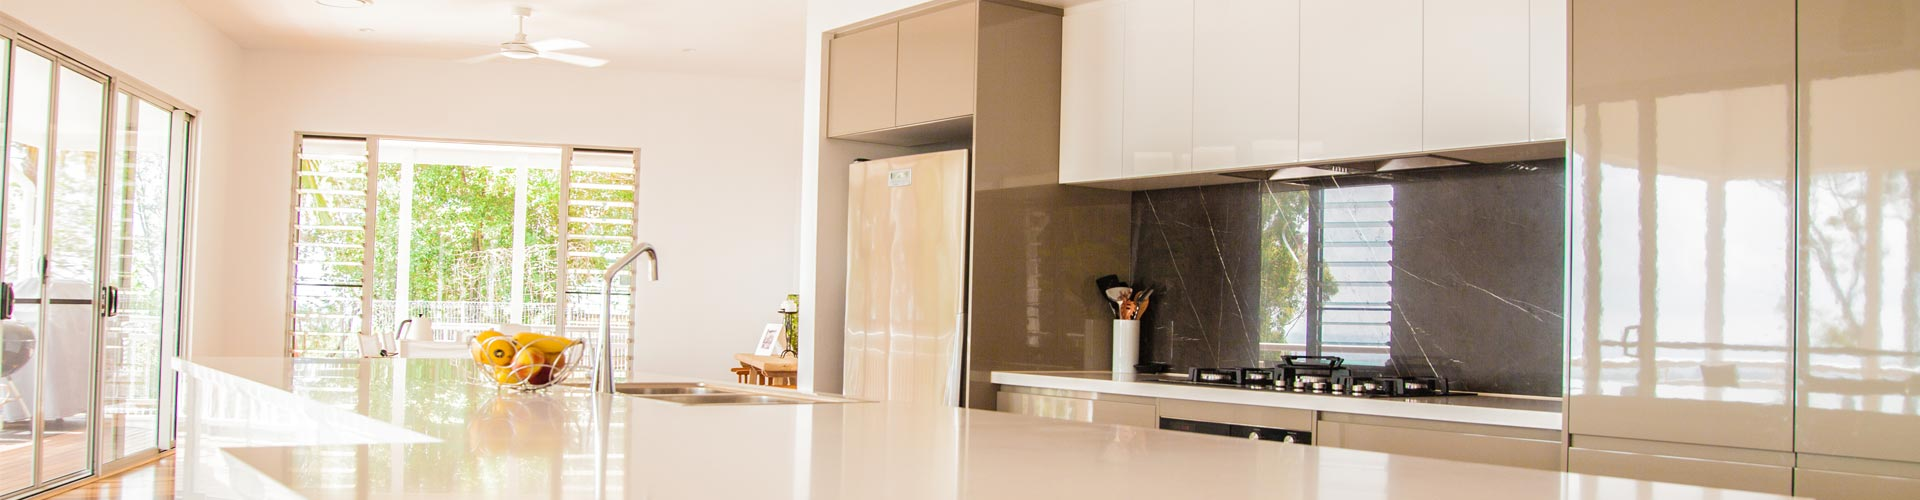 Cabinetry Solutions  Sunrise Road Kitchen Hero Image